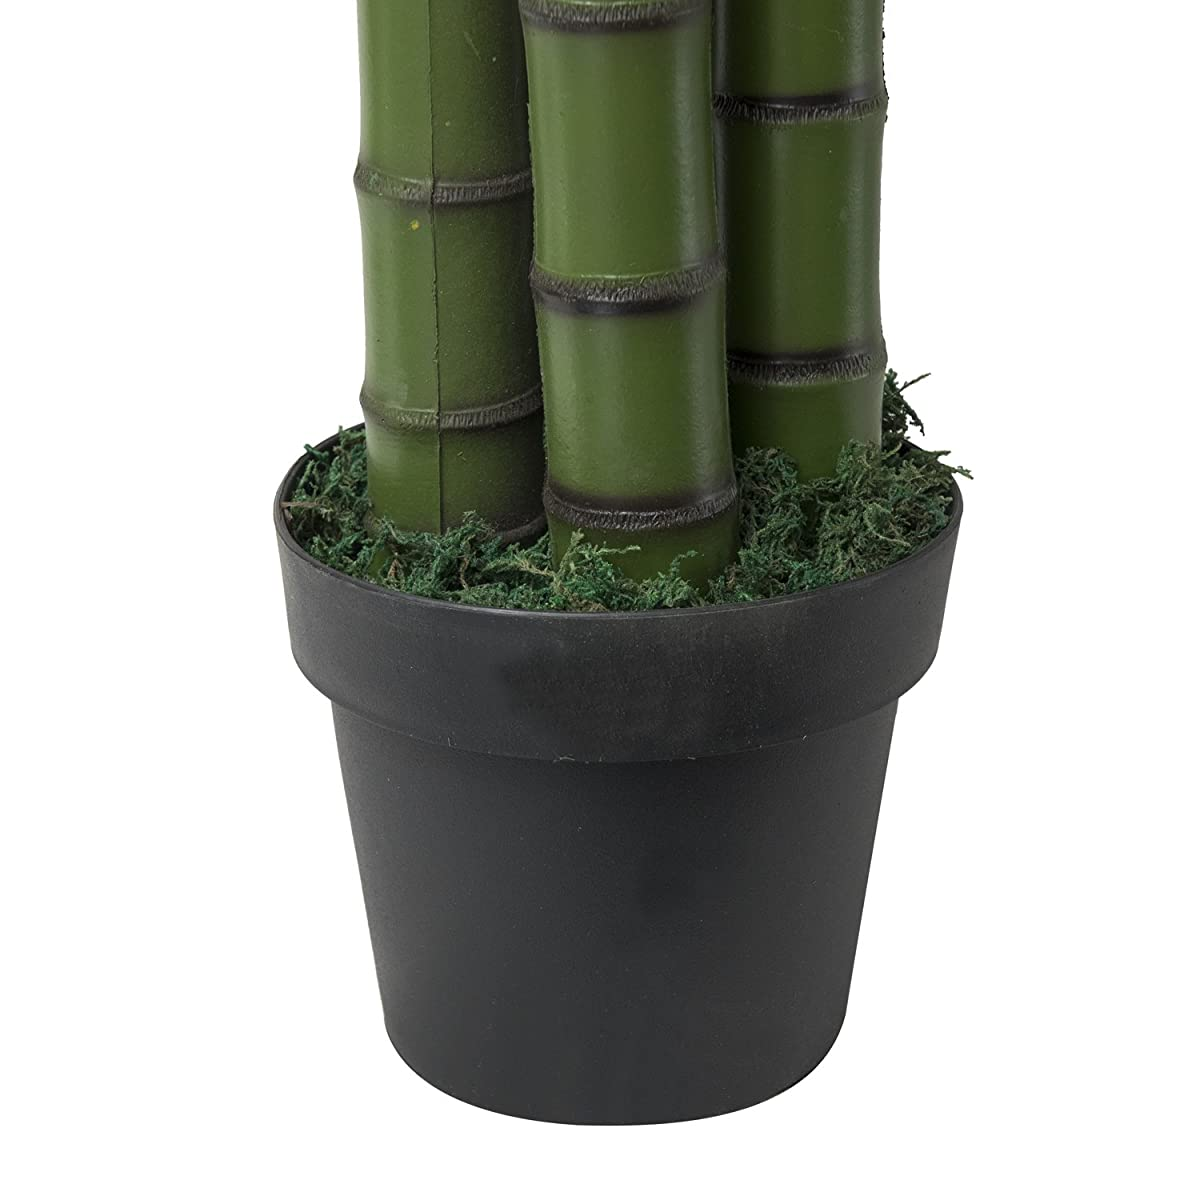 RUOPEI 6.5 FtArtificial Palm Tree - Artificial Tree Plant in Plastic Pot, Potted Fake Greenery Decoration with Bendable Branches for Home, Restaurant, Cafe or Office Decorating (Green)